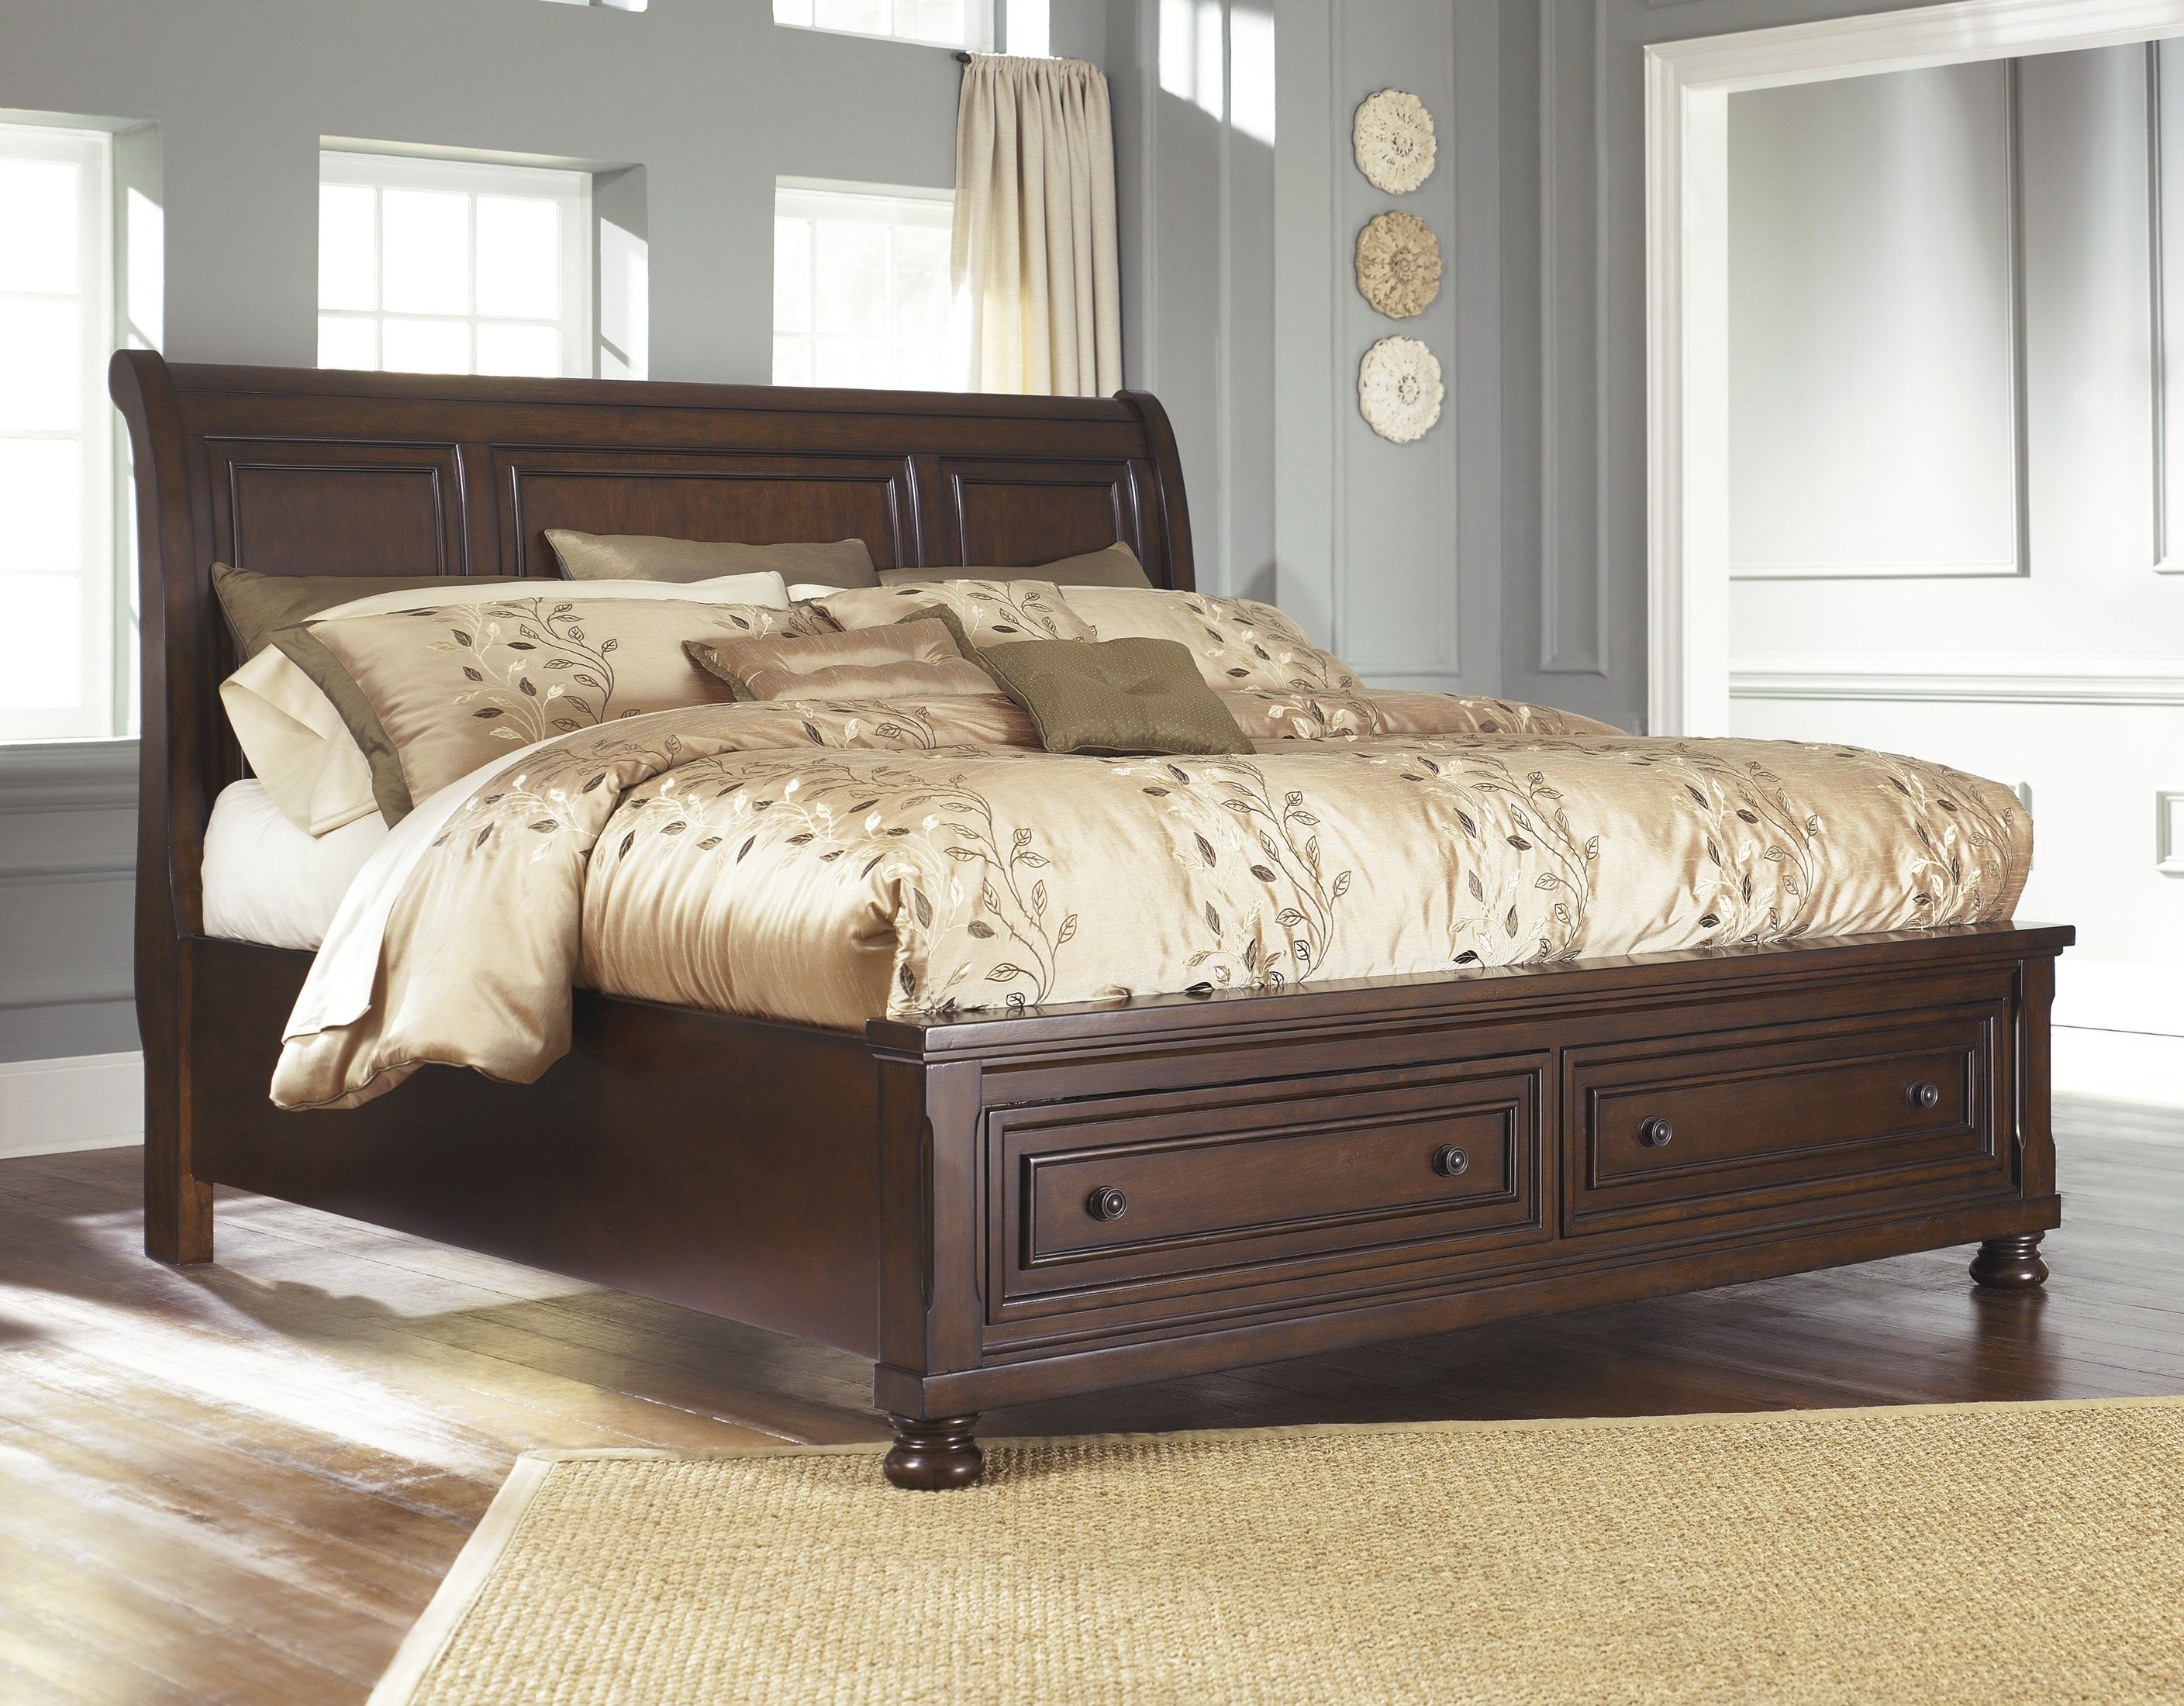 Renaissance  Queen Sleigh Storage Bed  B697 77,74,98 Queen &